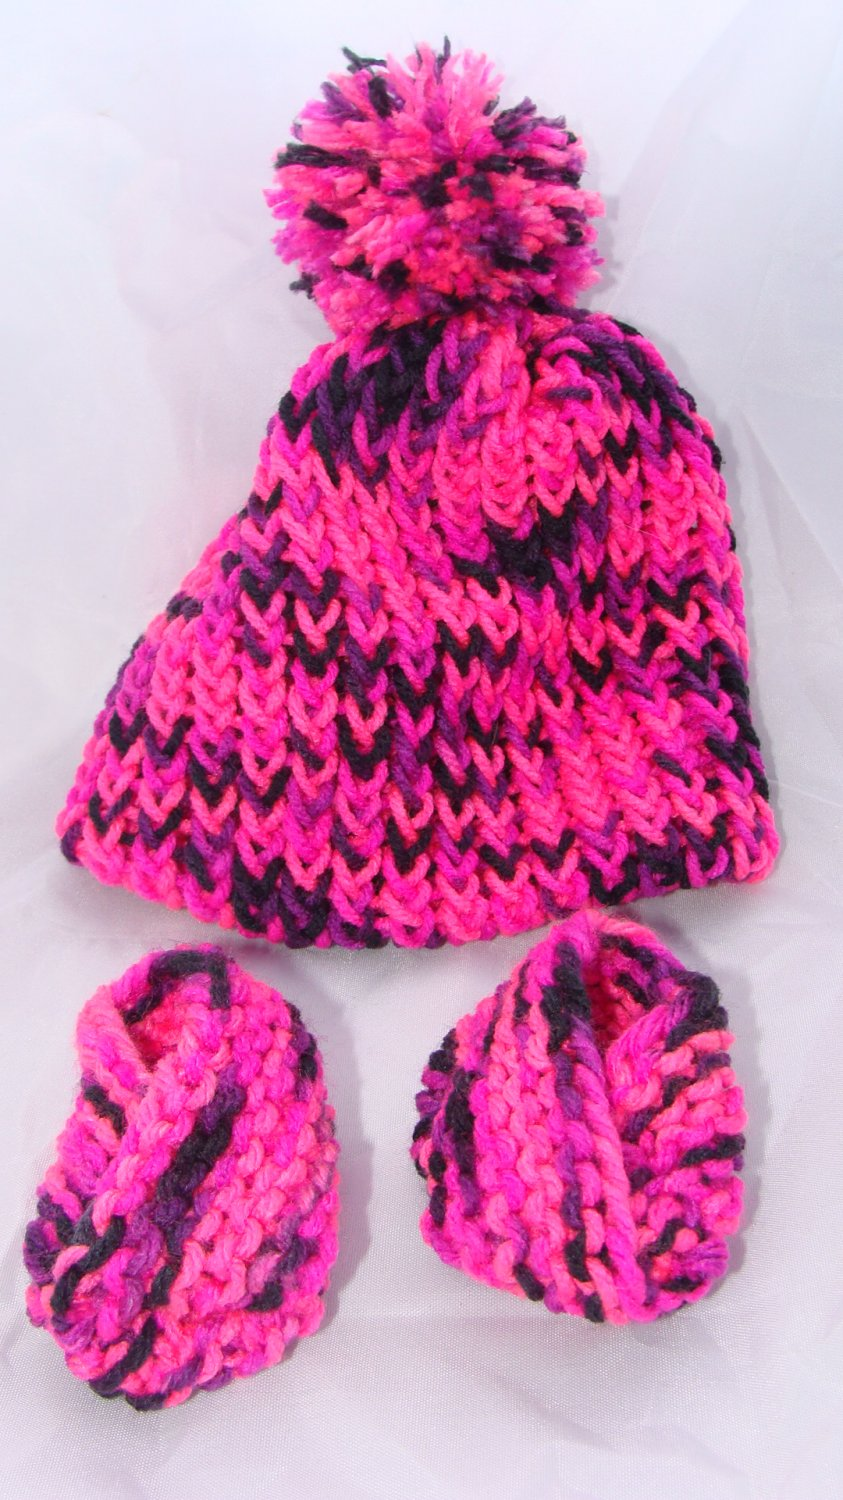 Pink baby booties with pompom hat set